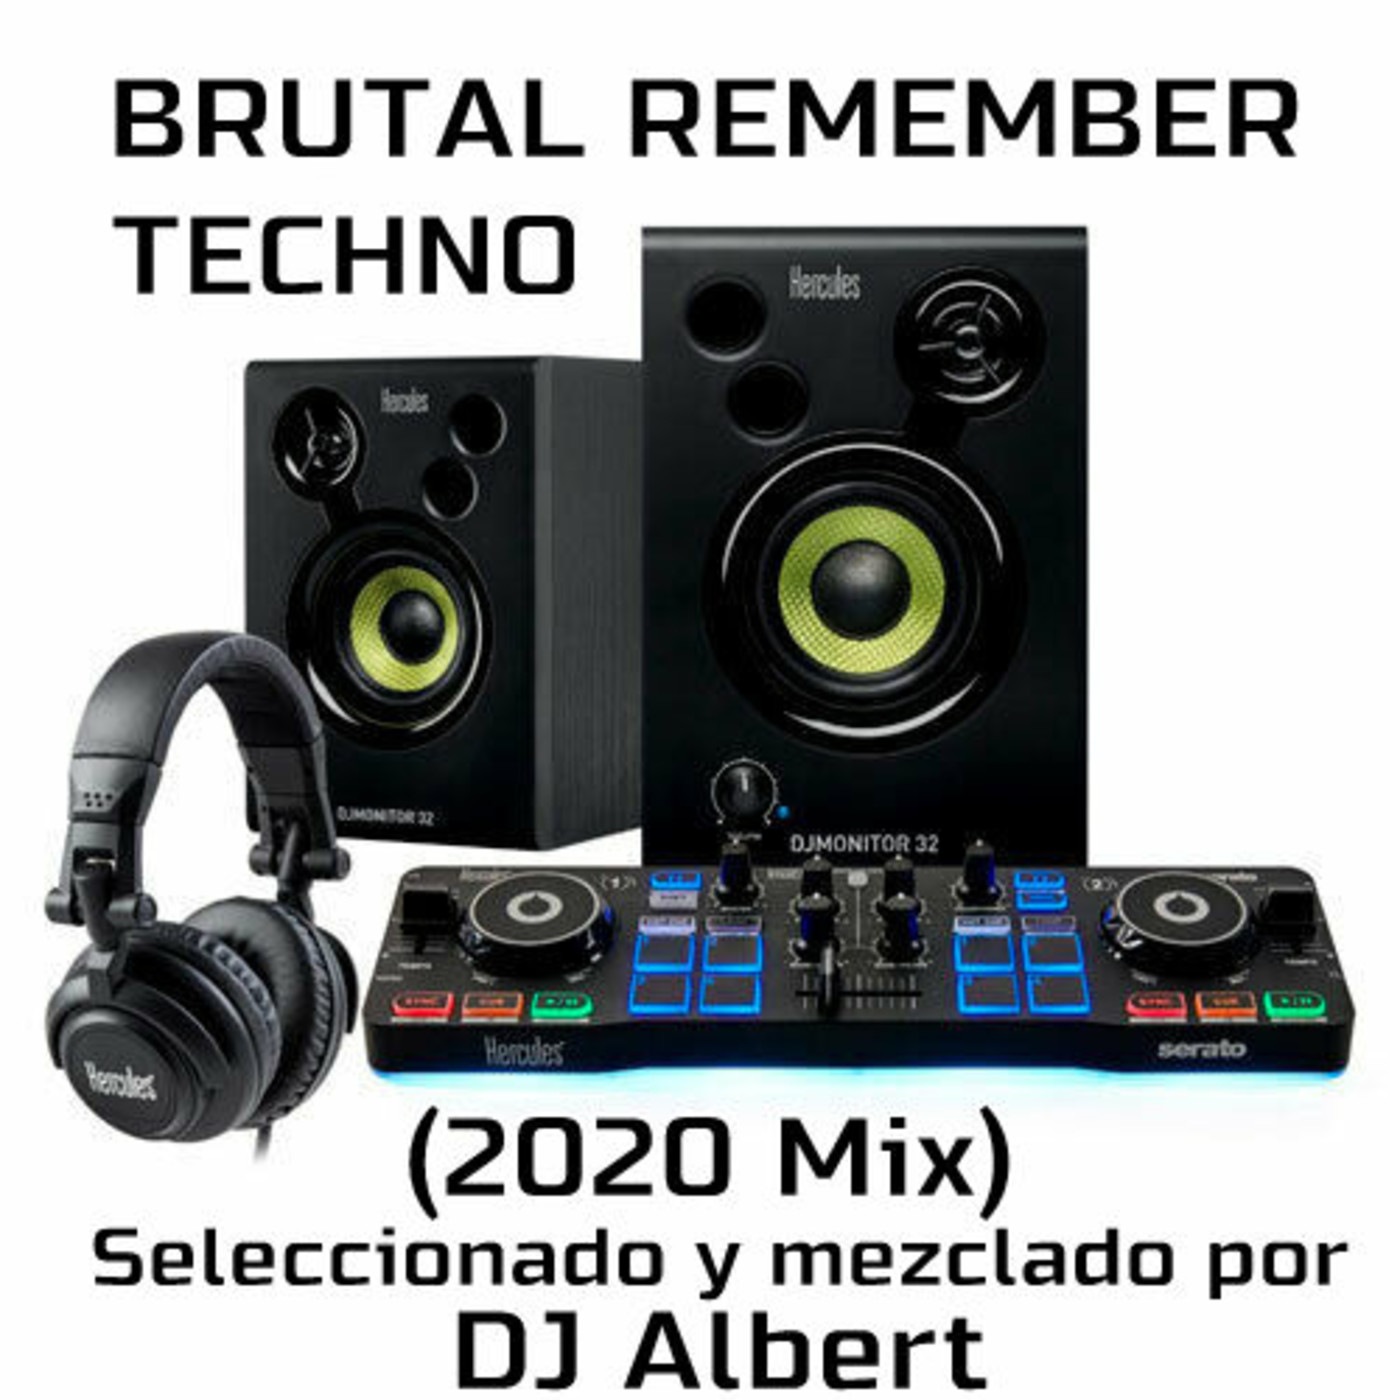 BRUTAL REMEMBER TECHNO (2020 Mix) Seleccionado y mezclado por DJ Albert